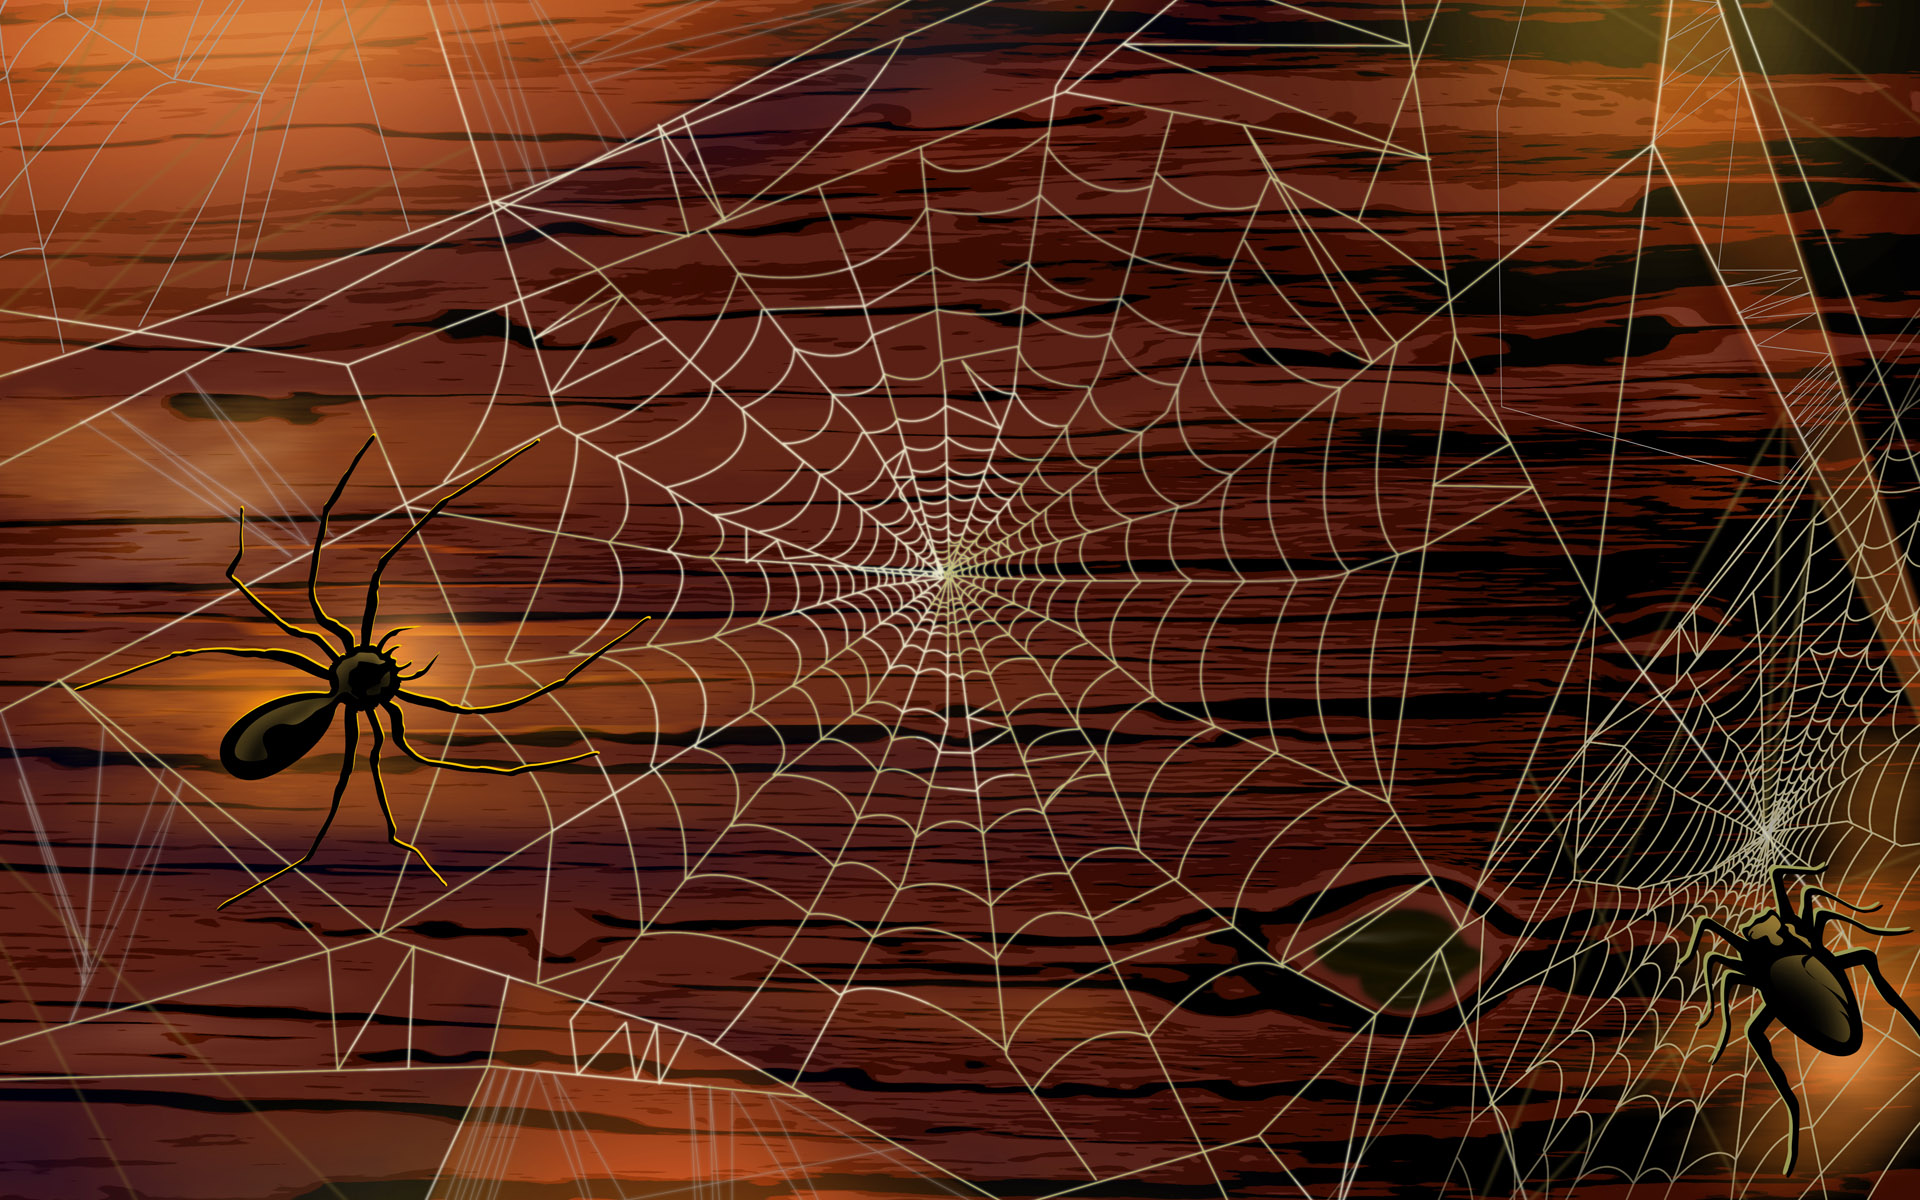 Spider Man Hd Wallpaper Spiders Images amp Pictures   Becuo 1920x1200